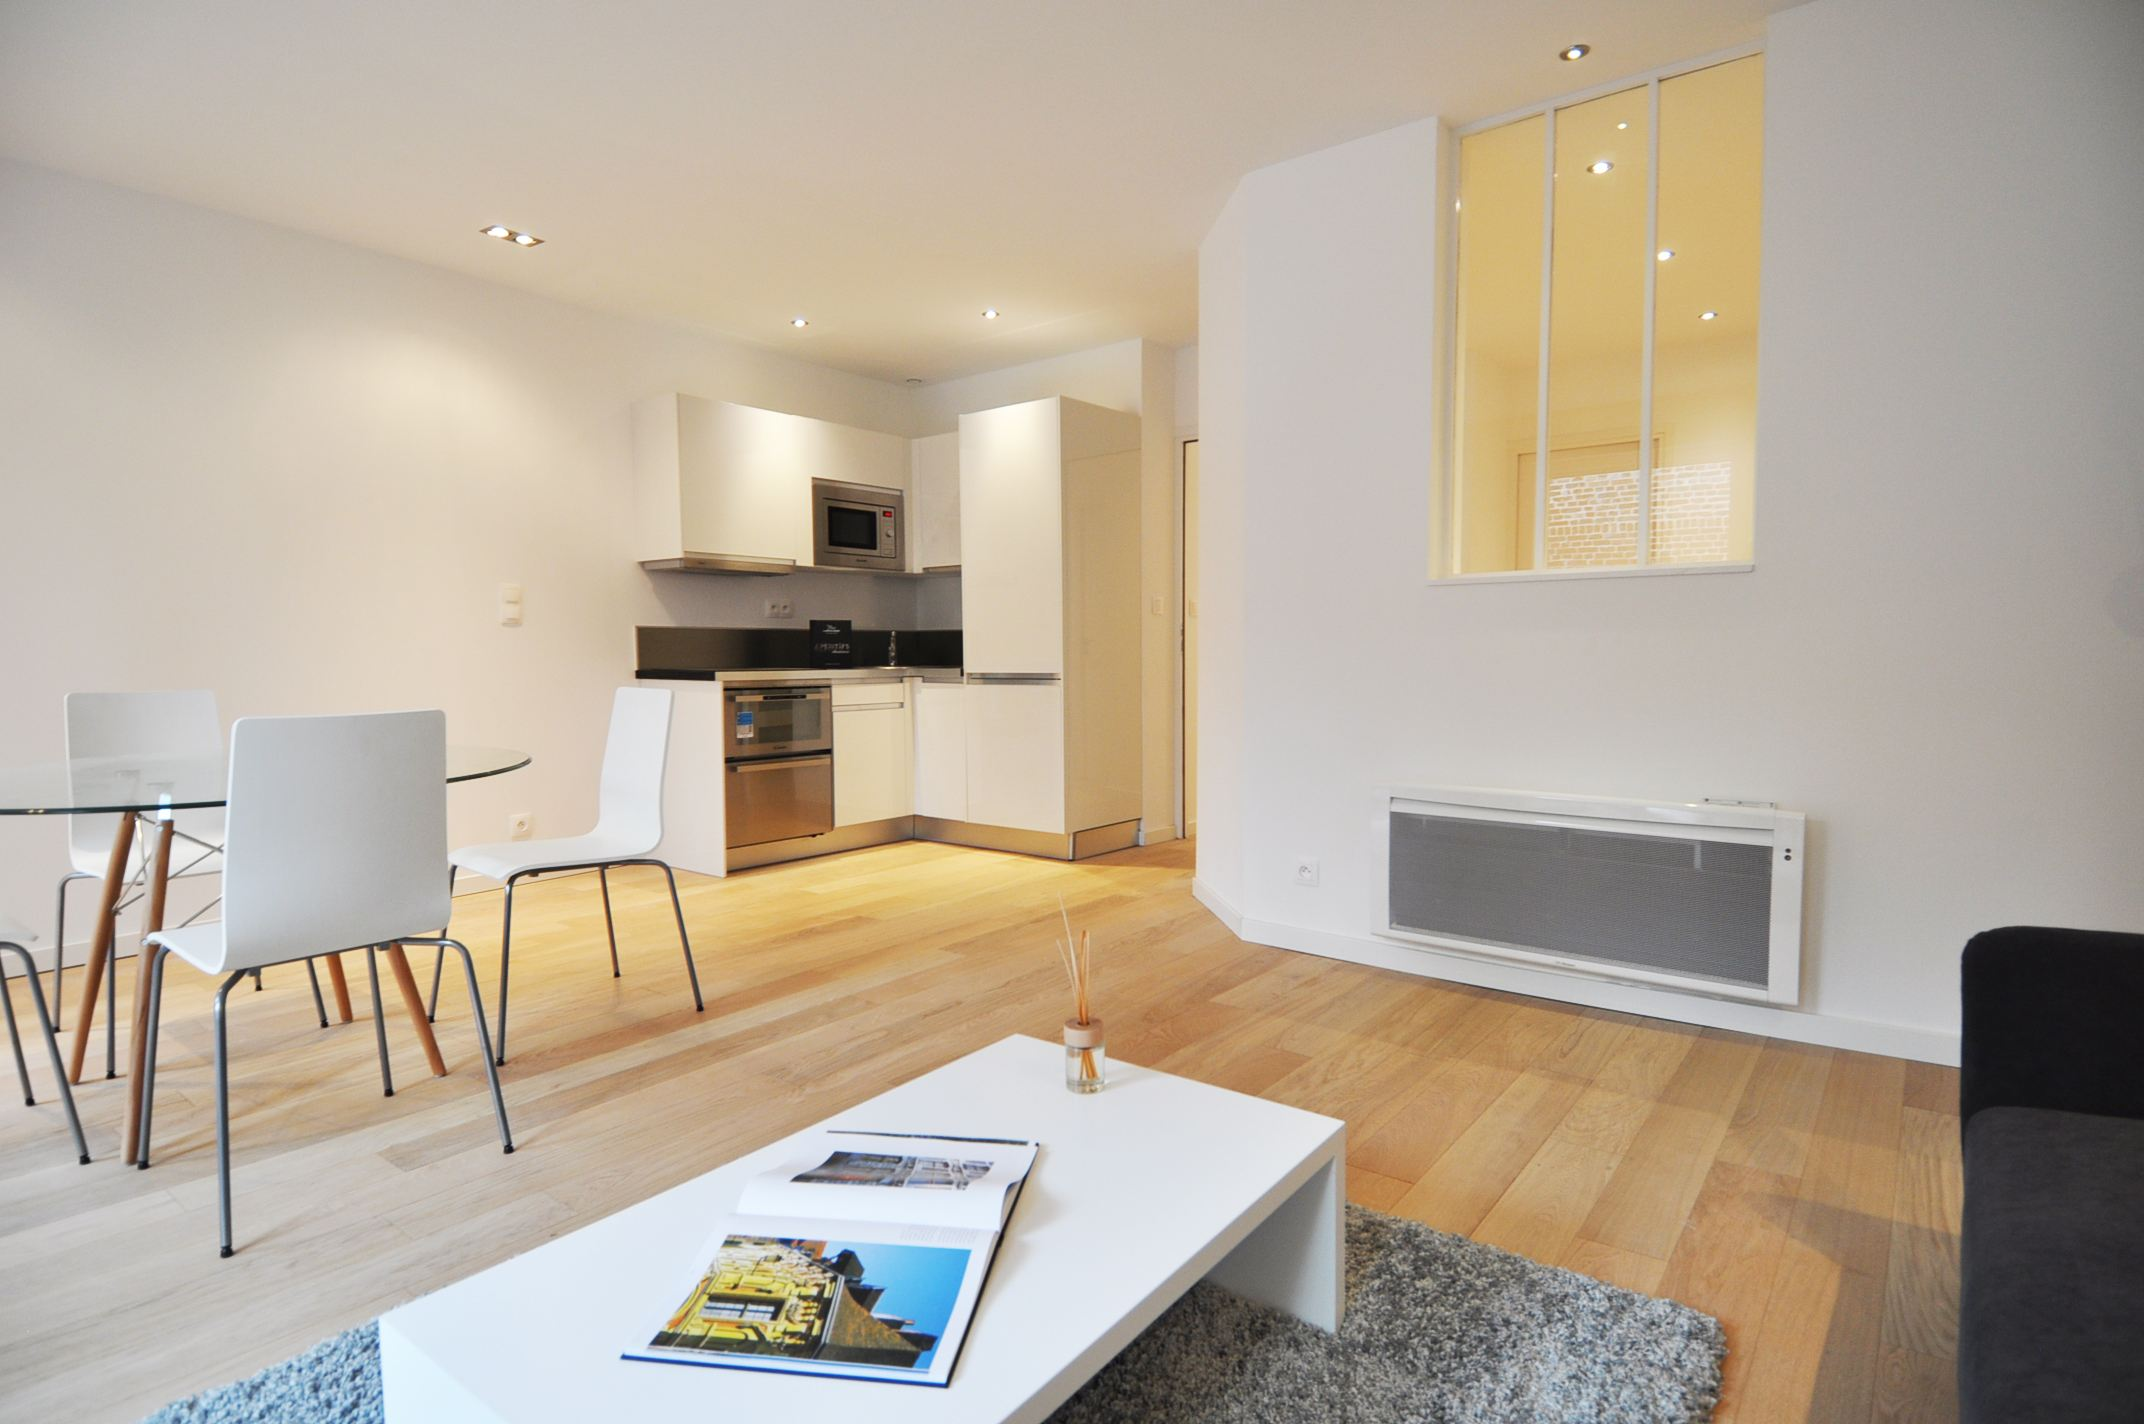 Property For Sale at LILLE Vauban, renovated apartment of 84m², 3 Ch.